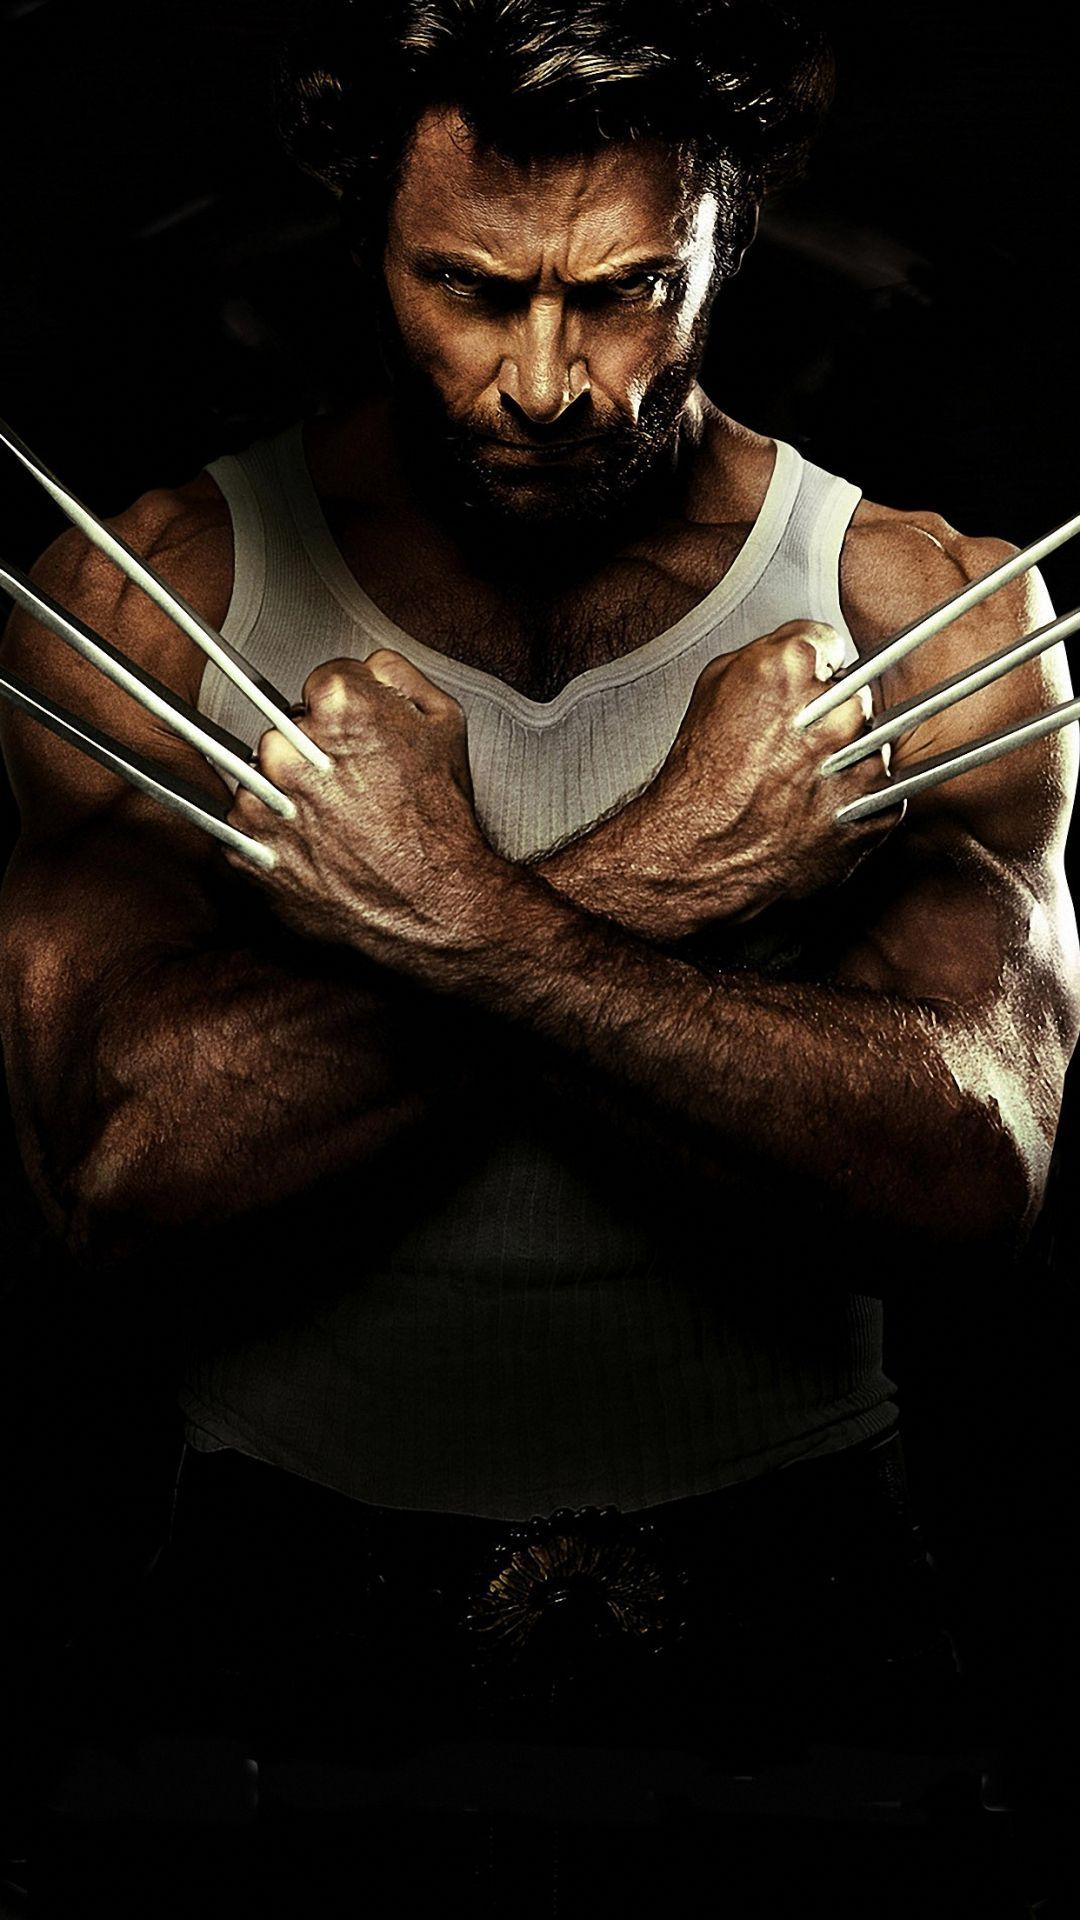 Wolverine Wallpapers For Mobile - Wallpaper Cave